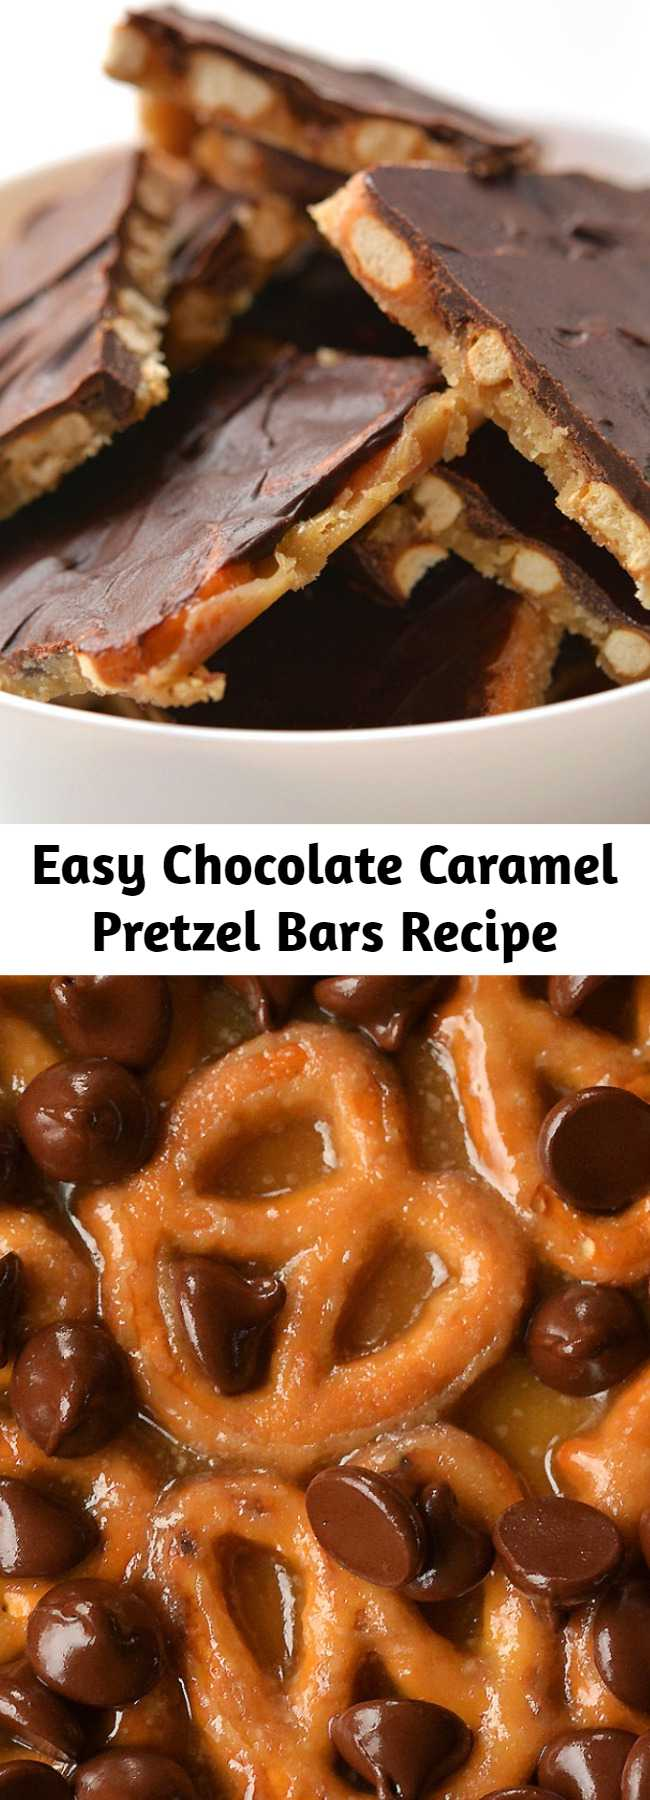 Easy Chocolate Caramel Pretzel Bars Recipe - These chocolate caramel pretzel bars are soooo good. And you only need 4 ingredients — so they're really easy to make! The sweet chocolate and caramel goes so perfectly with the salty crunch of the pretzels. A salty, crunchy and sweet holiday treat!